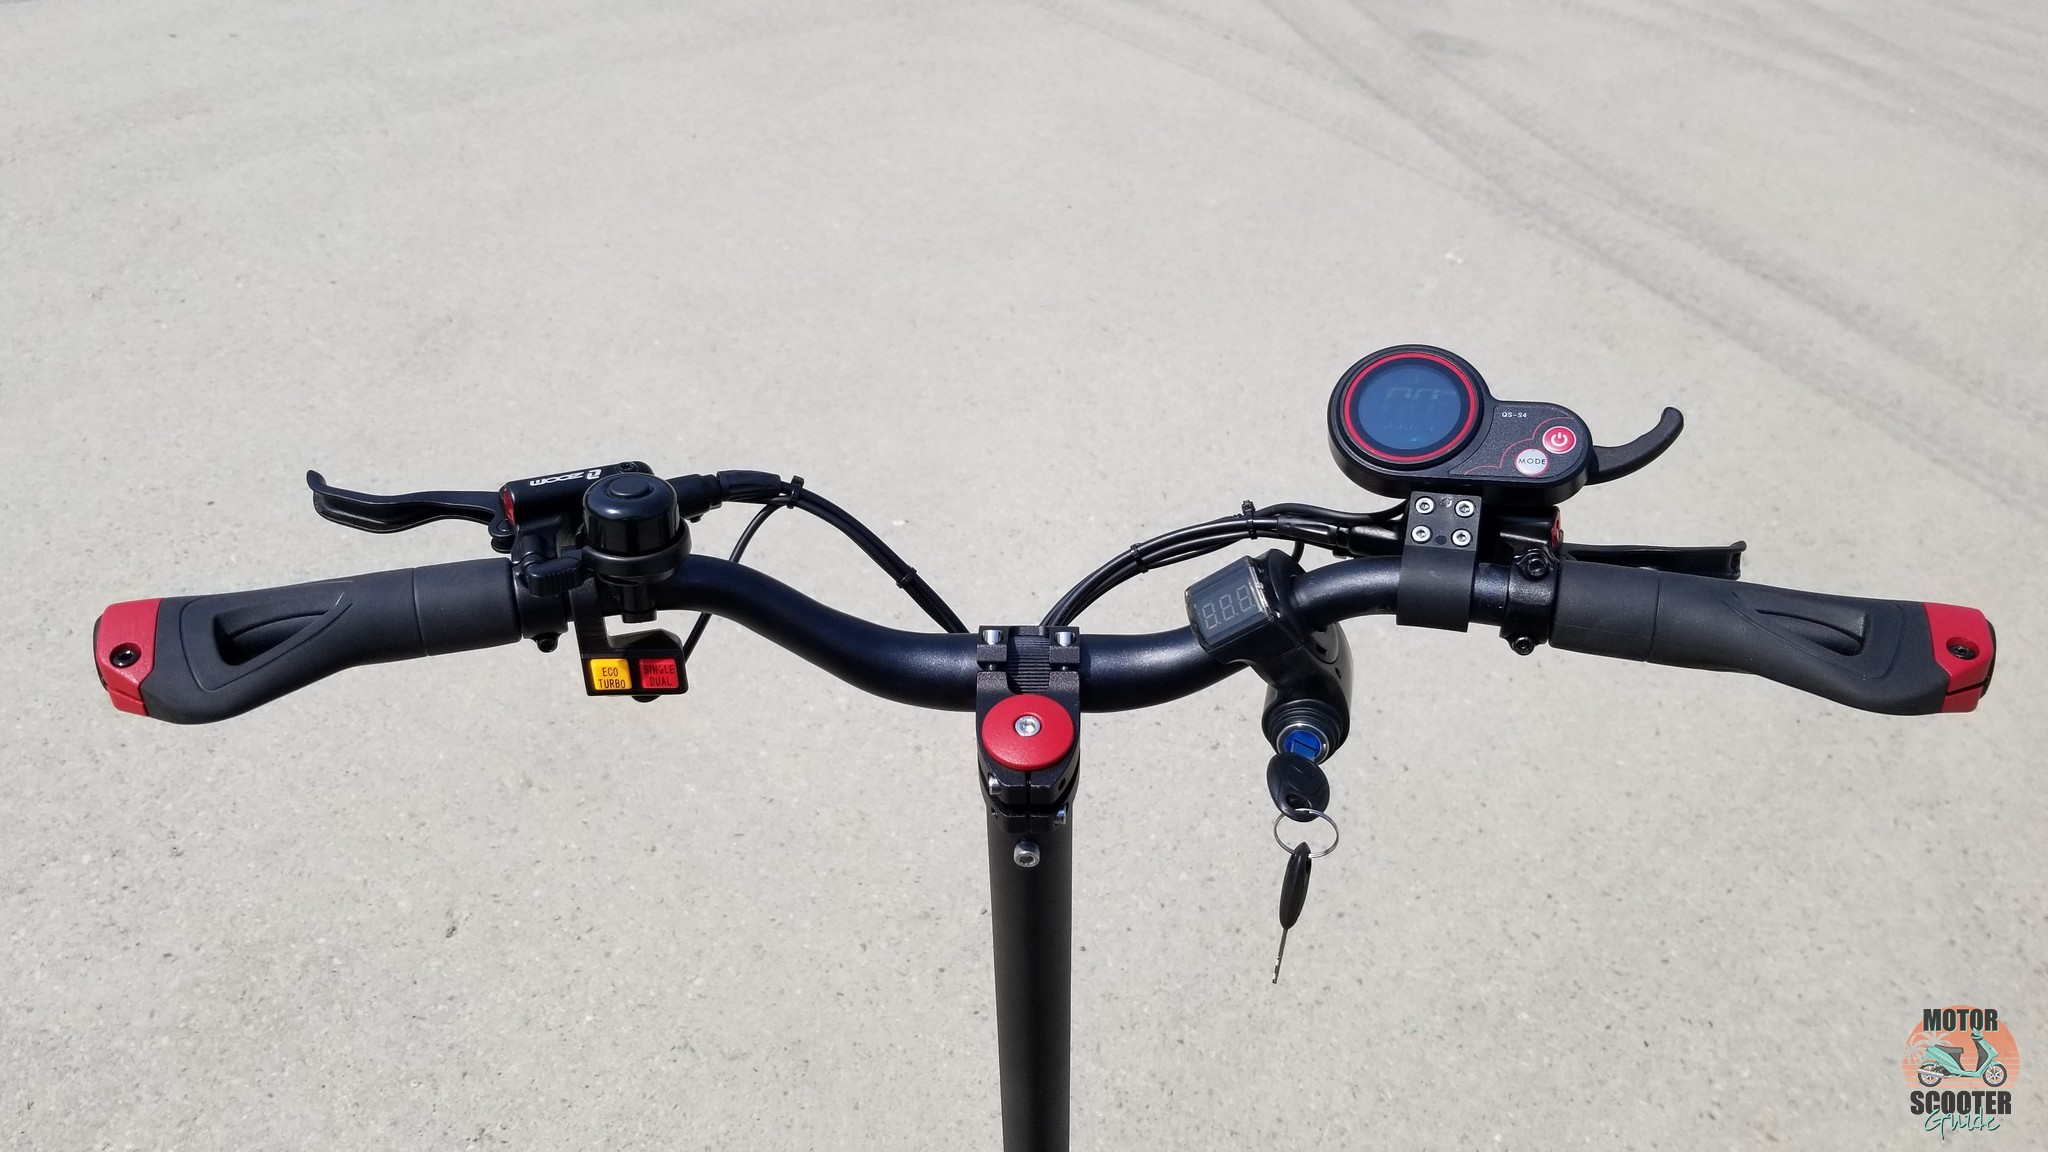 Rider view of the handlebar with various gadgets mounted